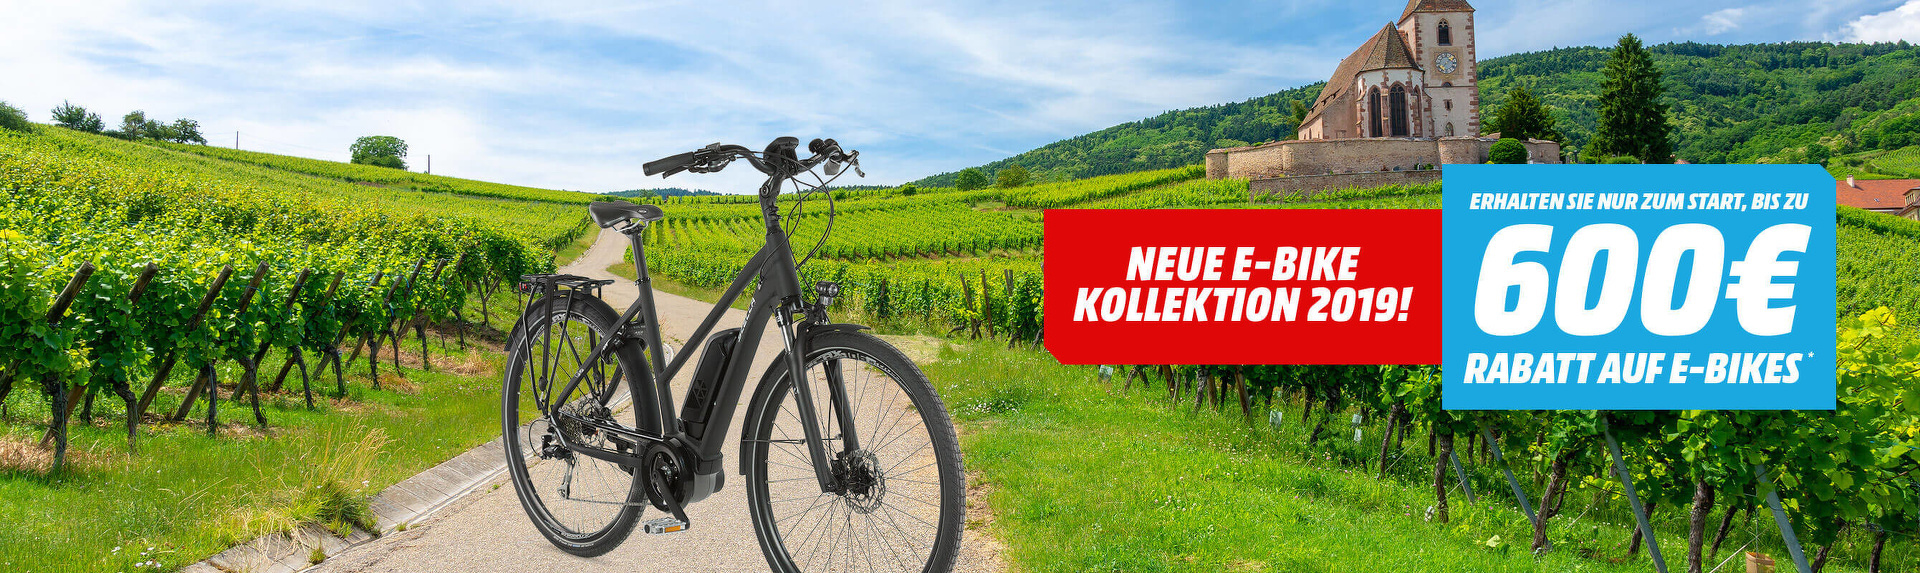 Neue E-Bike Kollektion 2019!